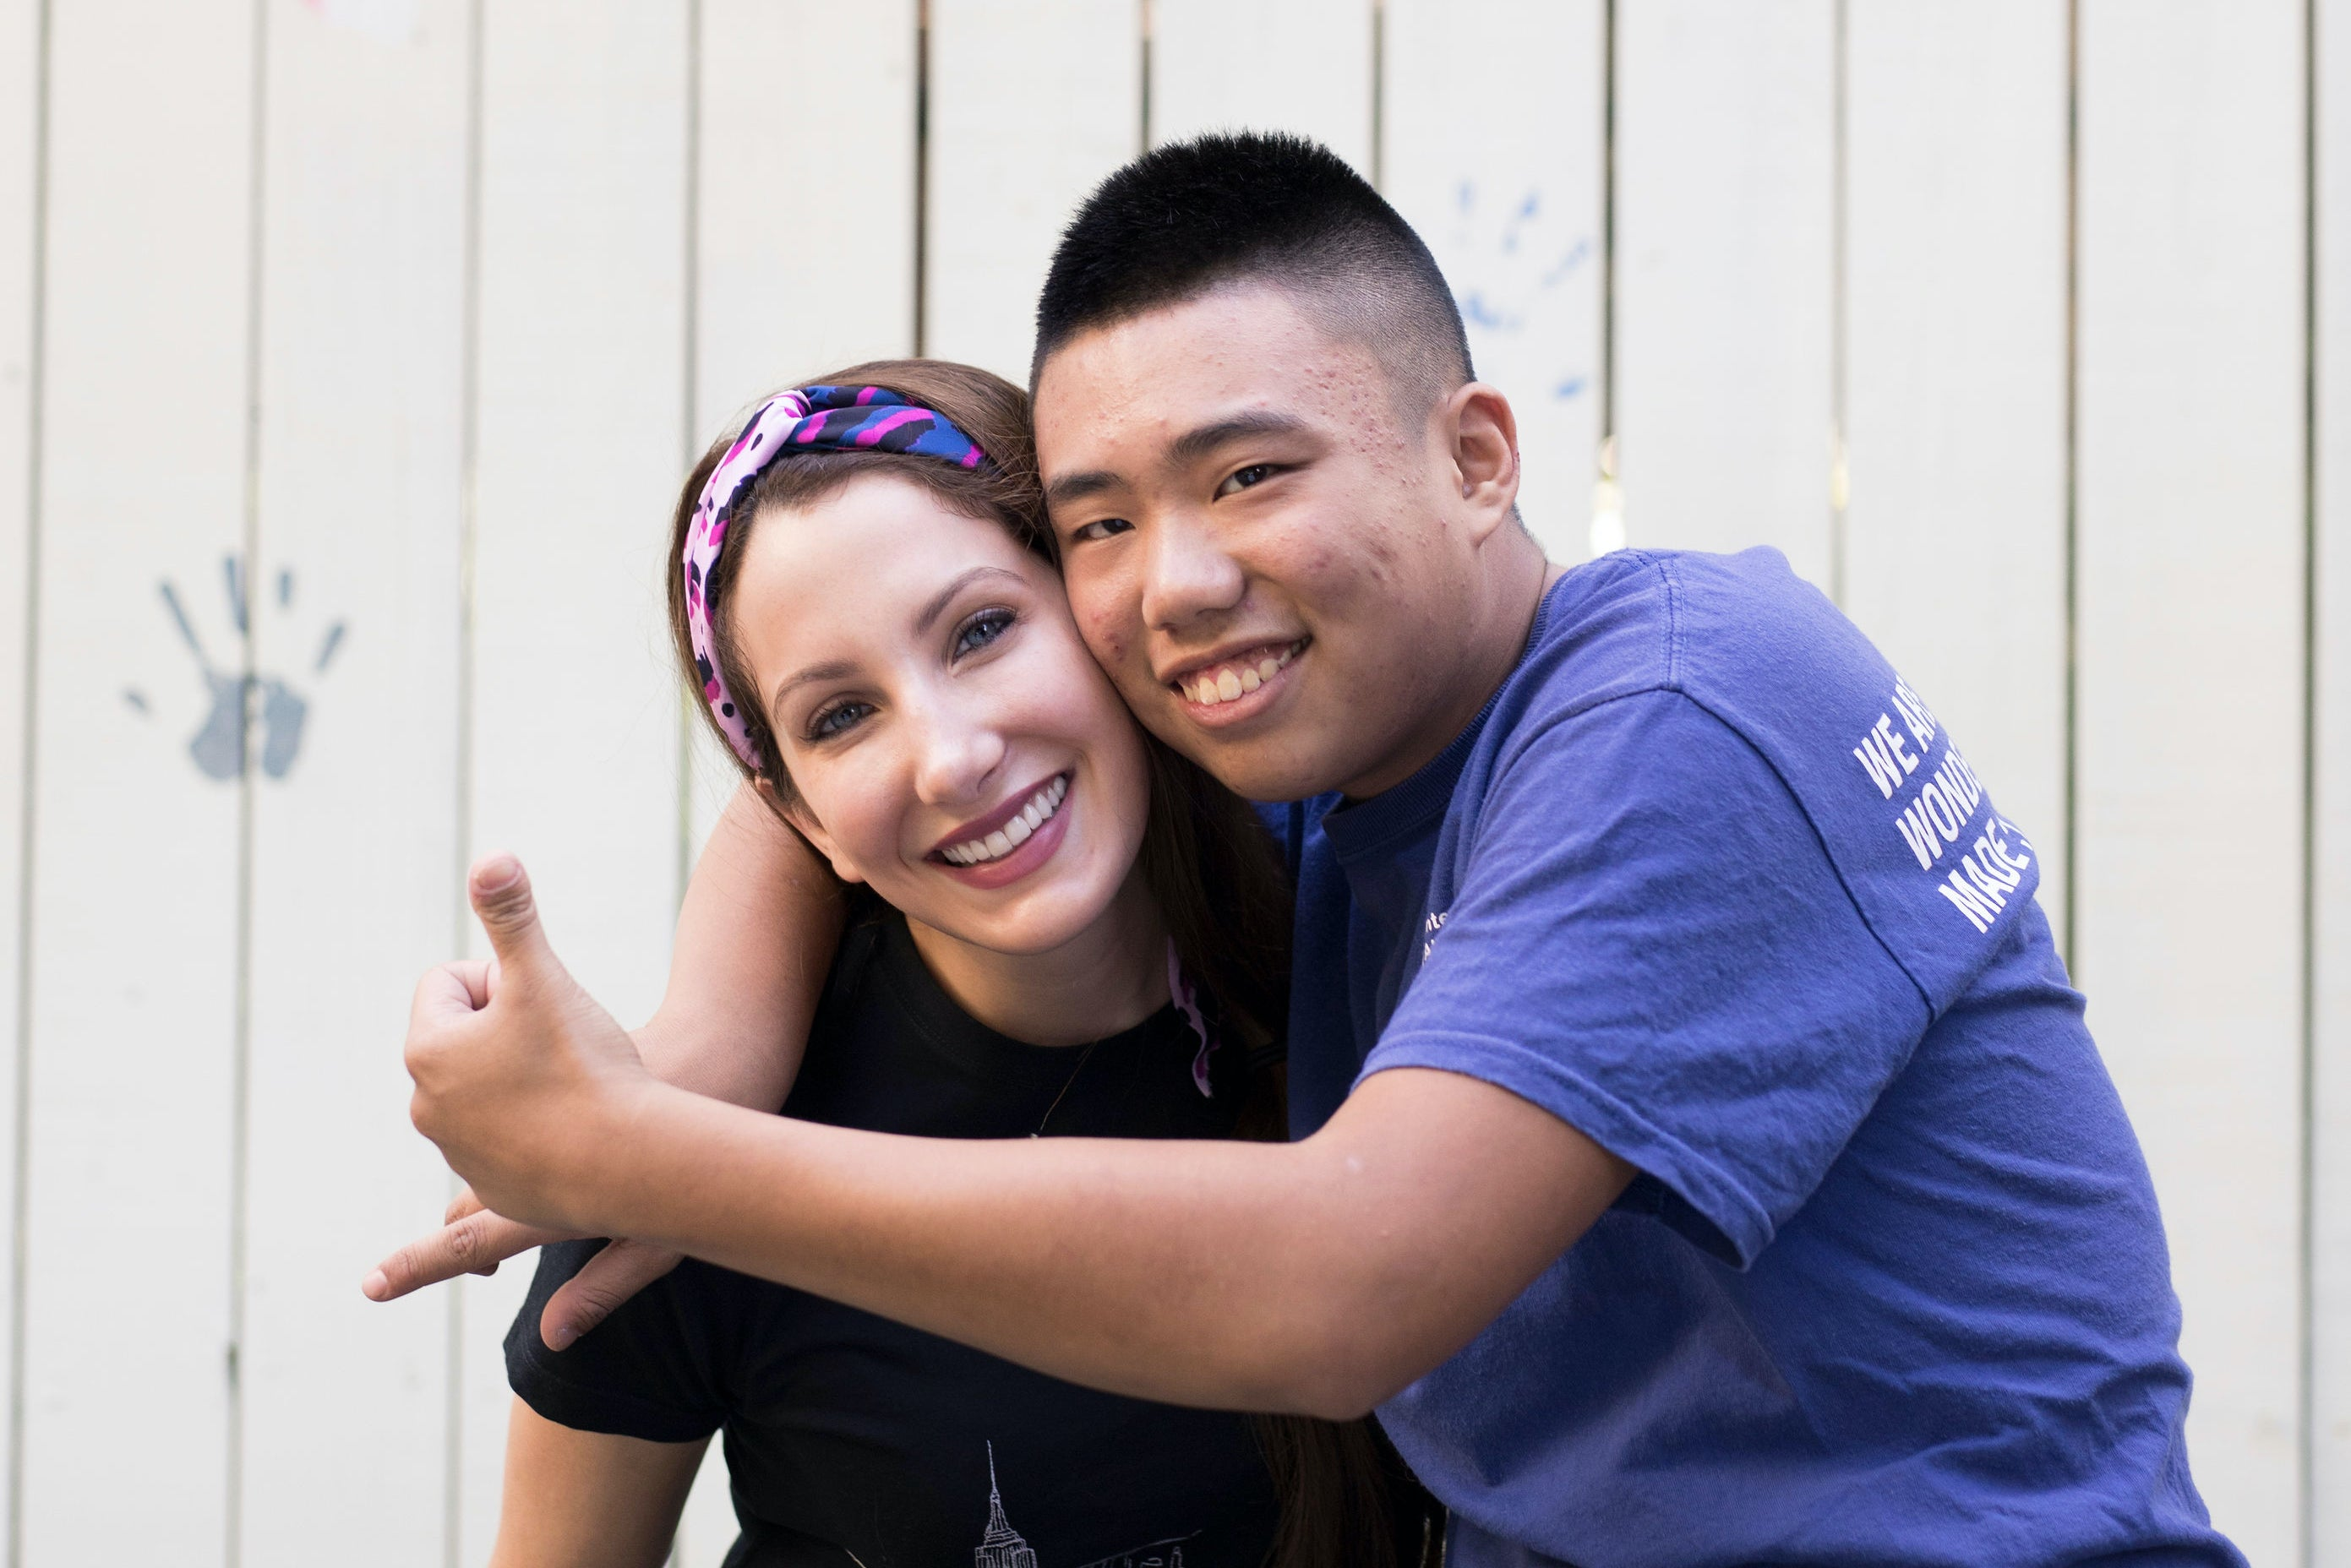 A woman is embraced by a young man who poses with thumbs up